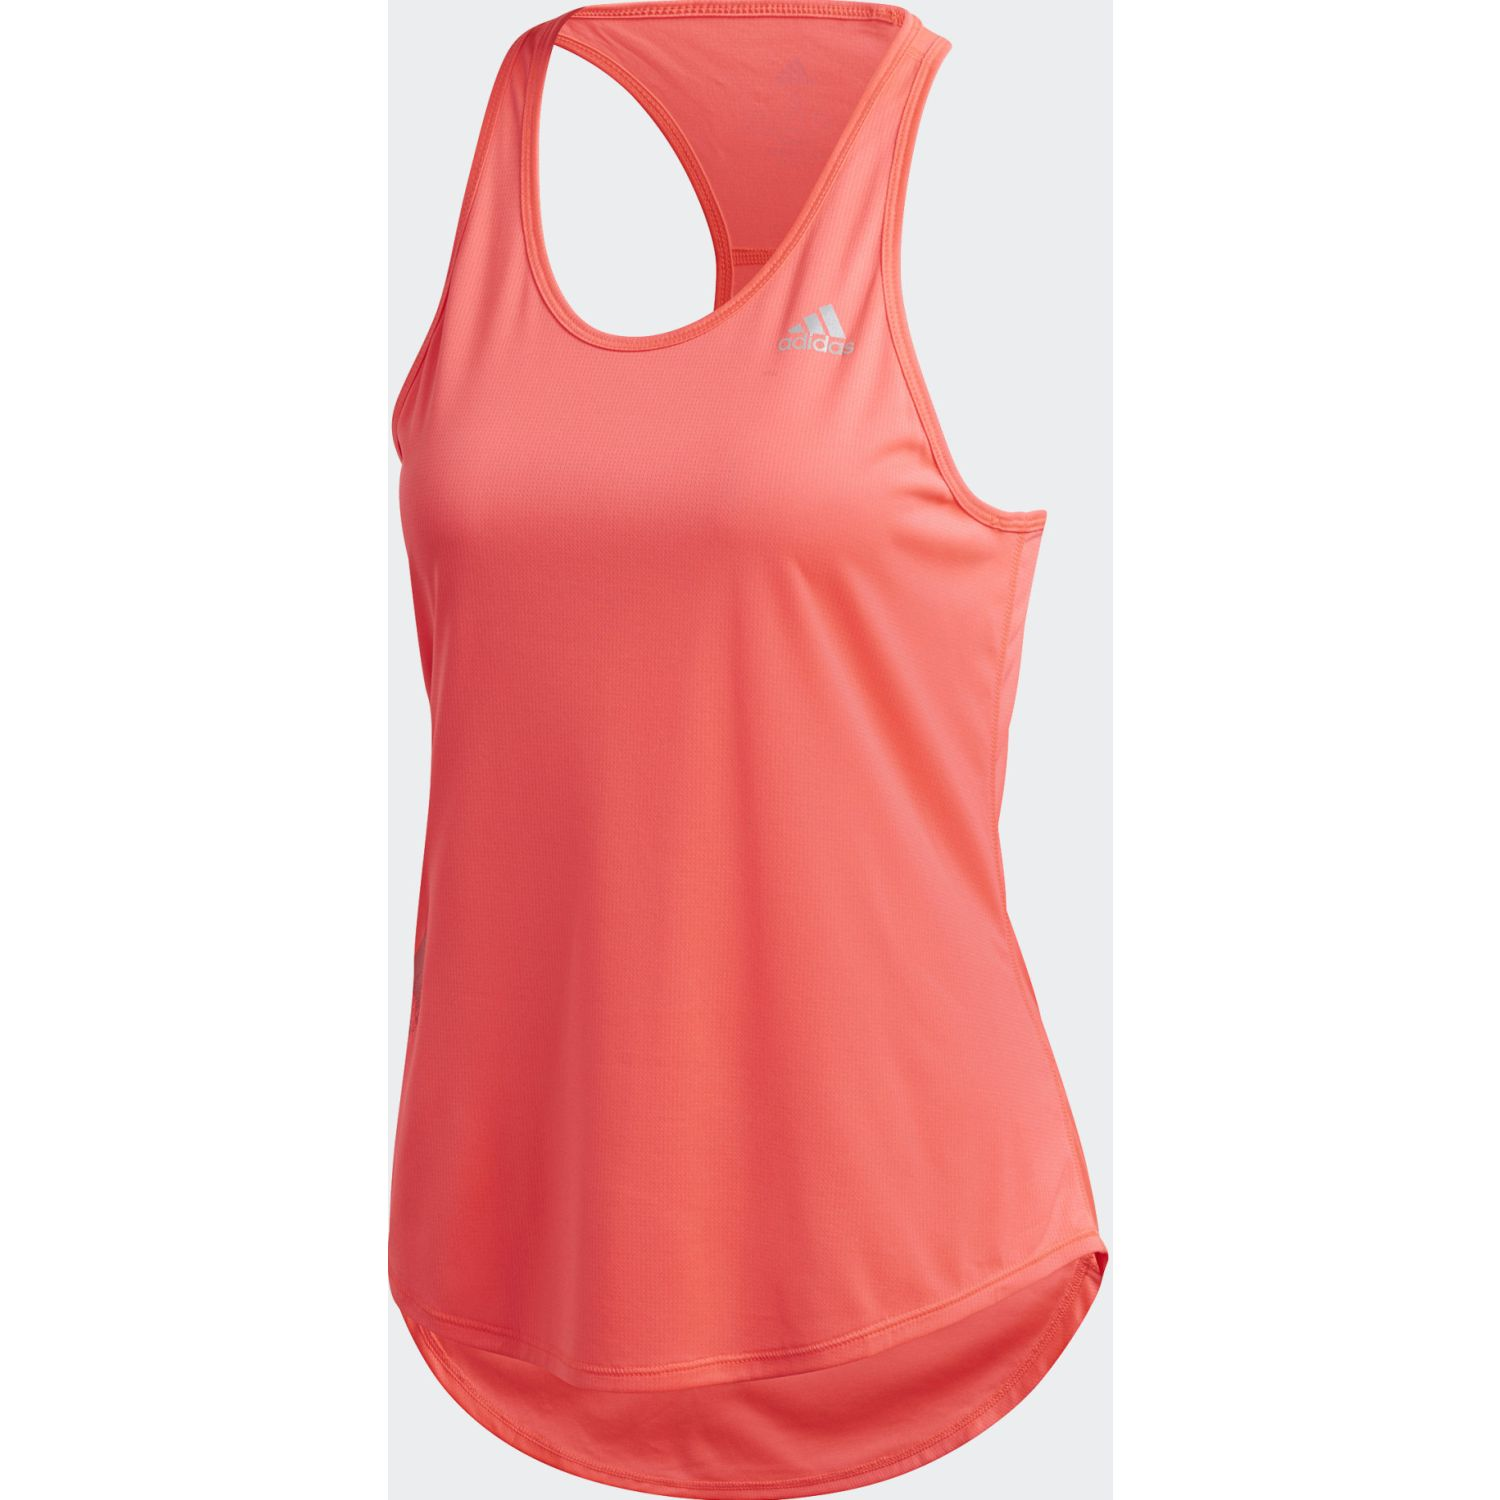 Adidas Run It Tank 3s Coral Camiseta sin mangas